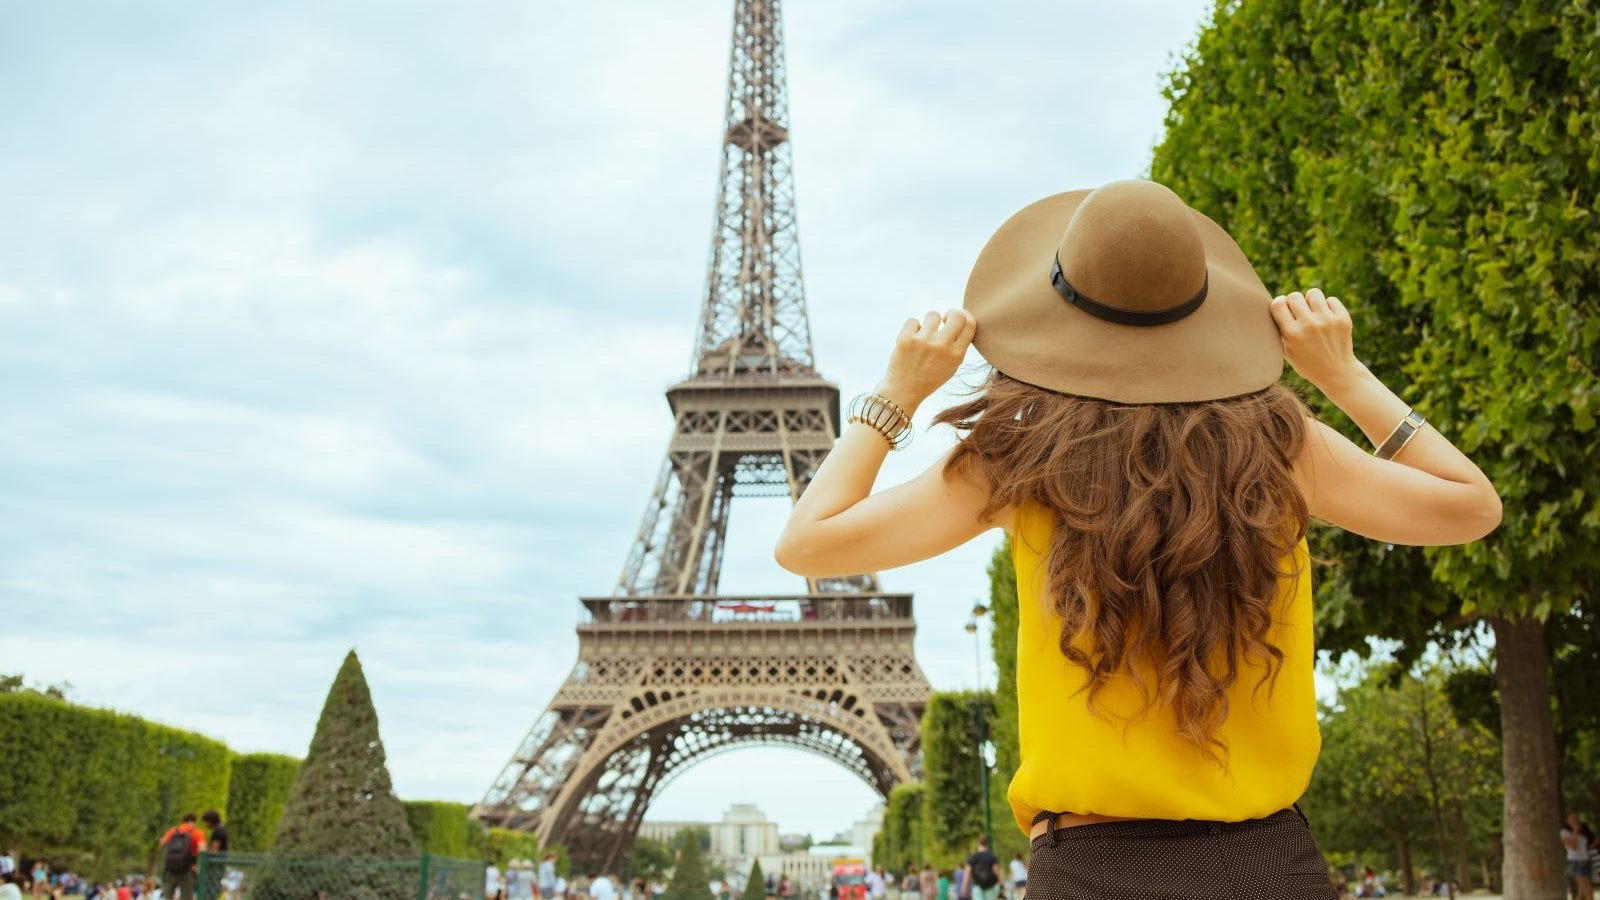 A young woman looking up at the Eiffel Tower.